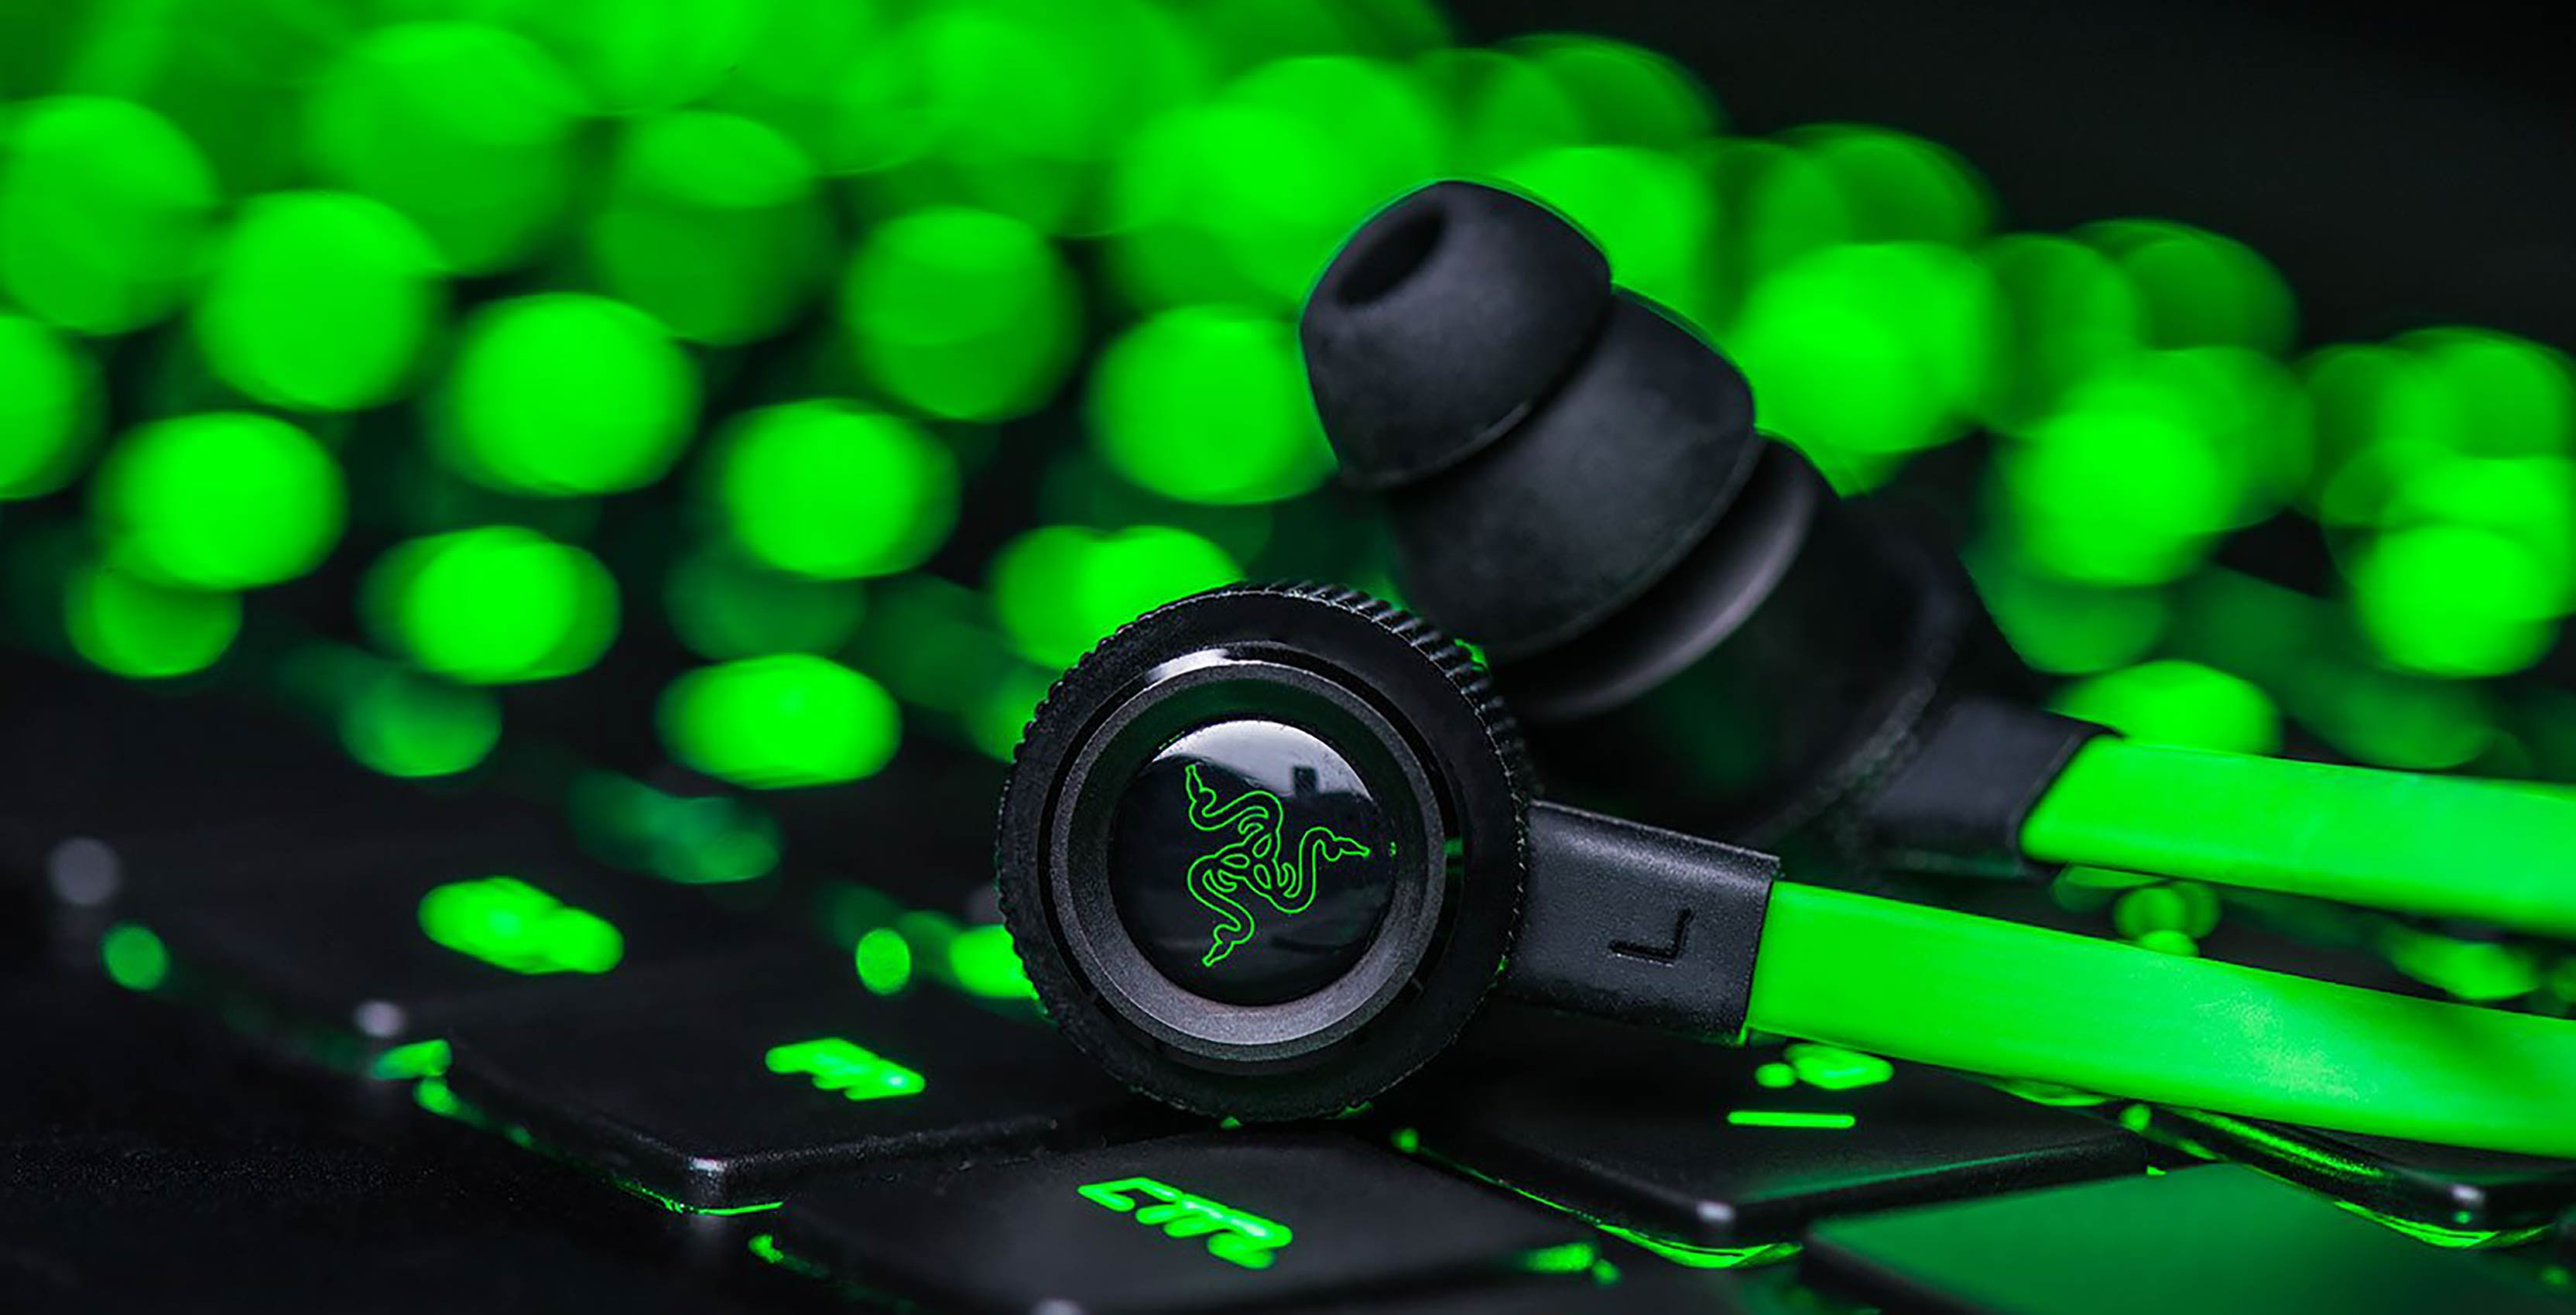 razer-hammer-head-headphone.jpg (3328×1699)